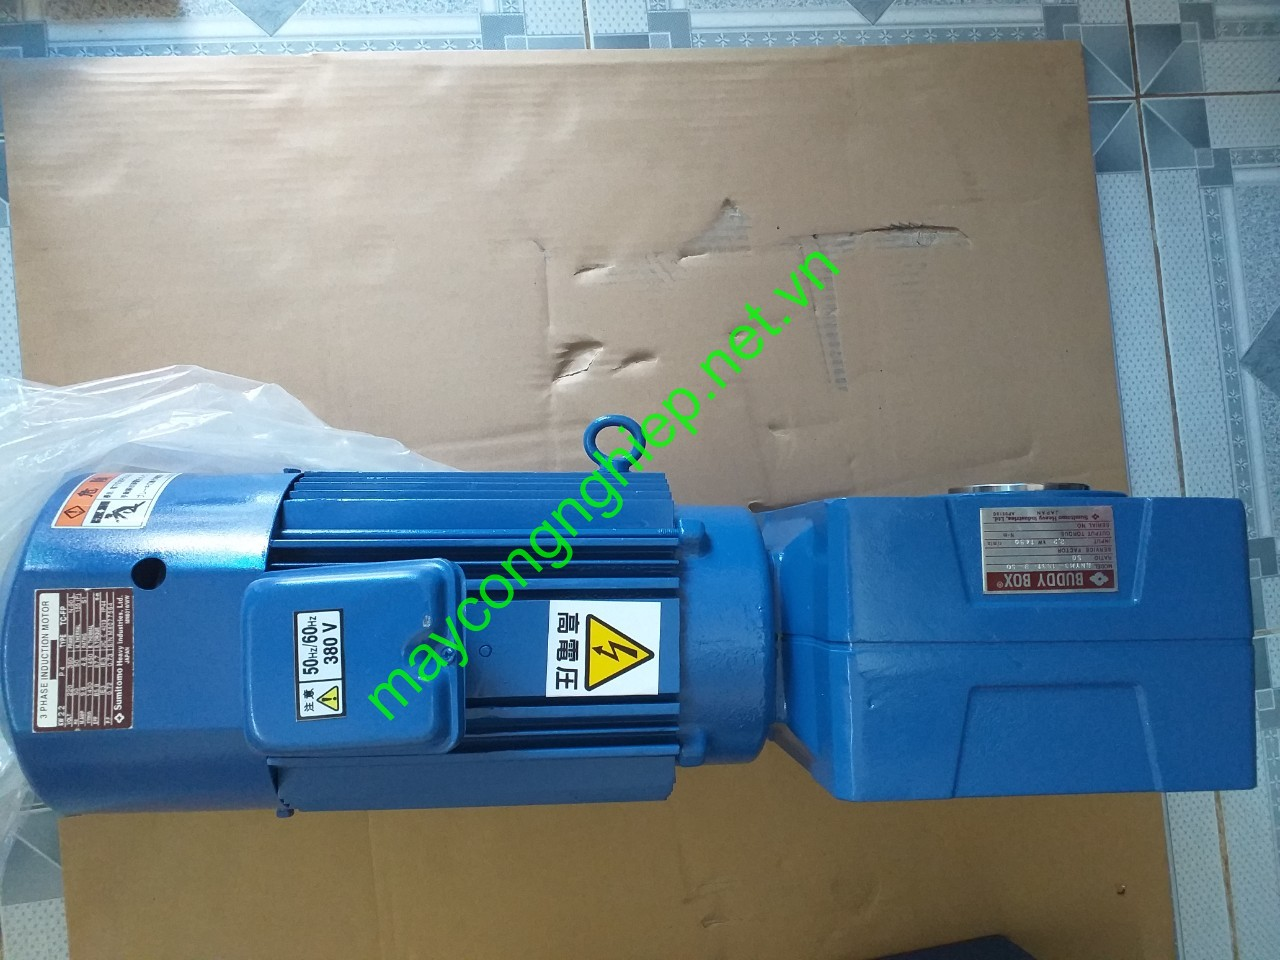 motor-giam-toc-cot-am-sumitomo-hyponic-2-2kw-1-50-2